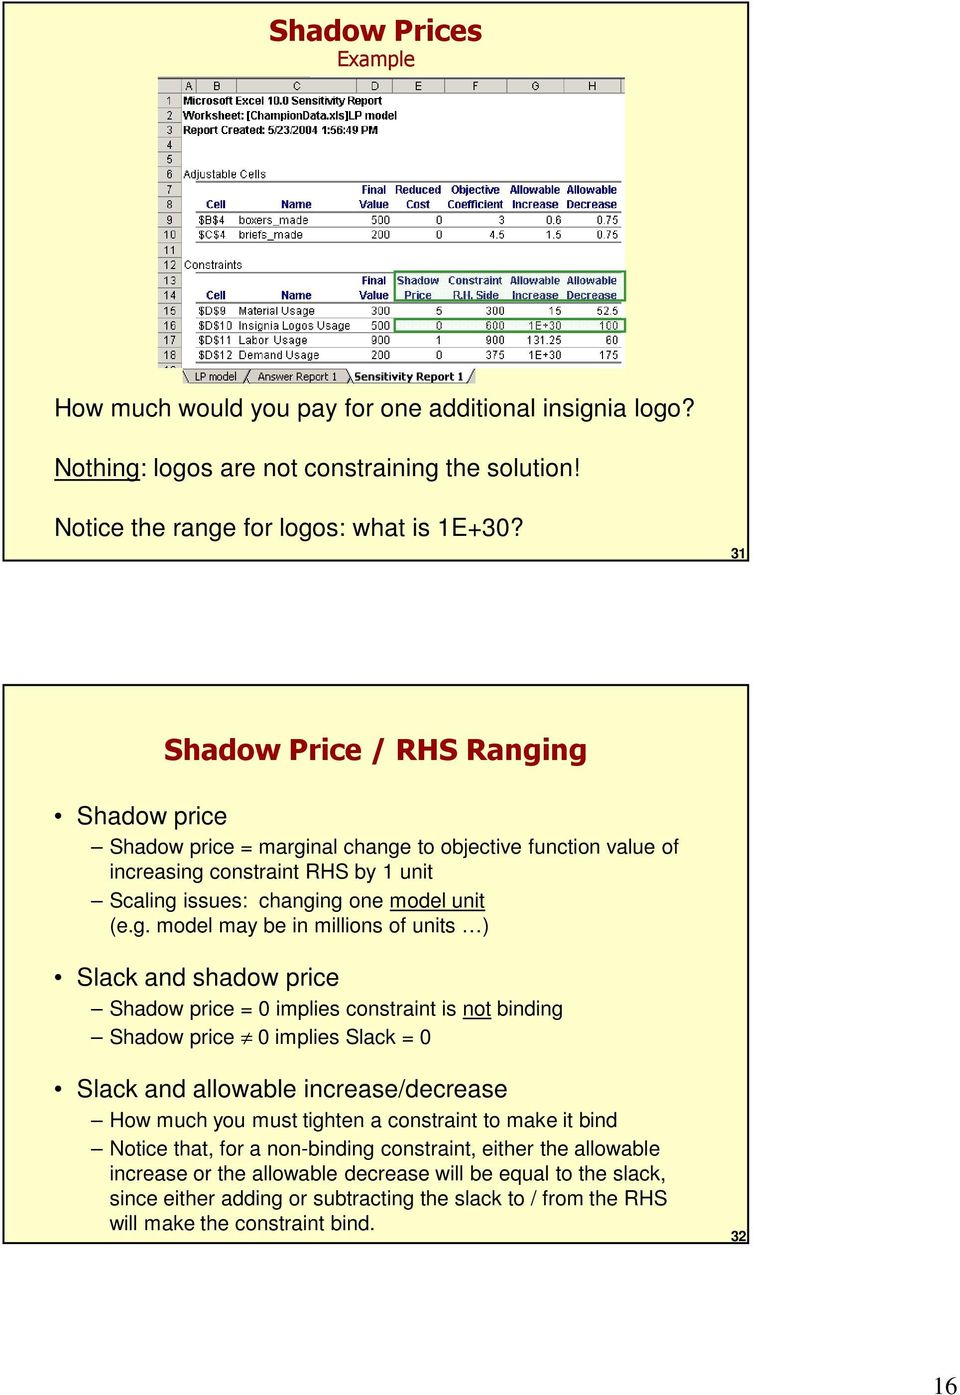 ng Shadow price Shadow price = marginal change to objective function value of increasing constraint RHS by 1 unit Scaling issues: changing one model unit (e.g. model may be in millions of units )